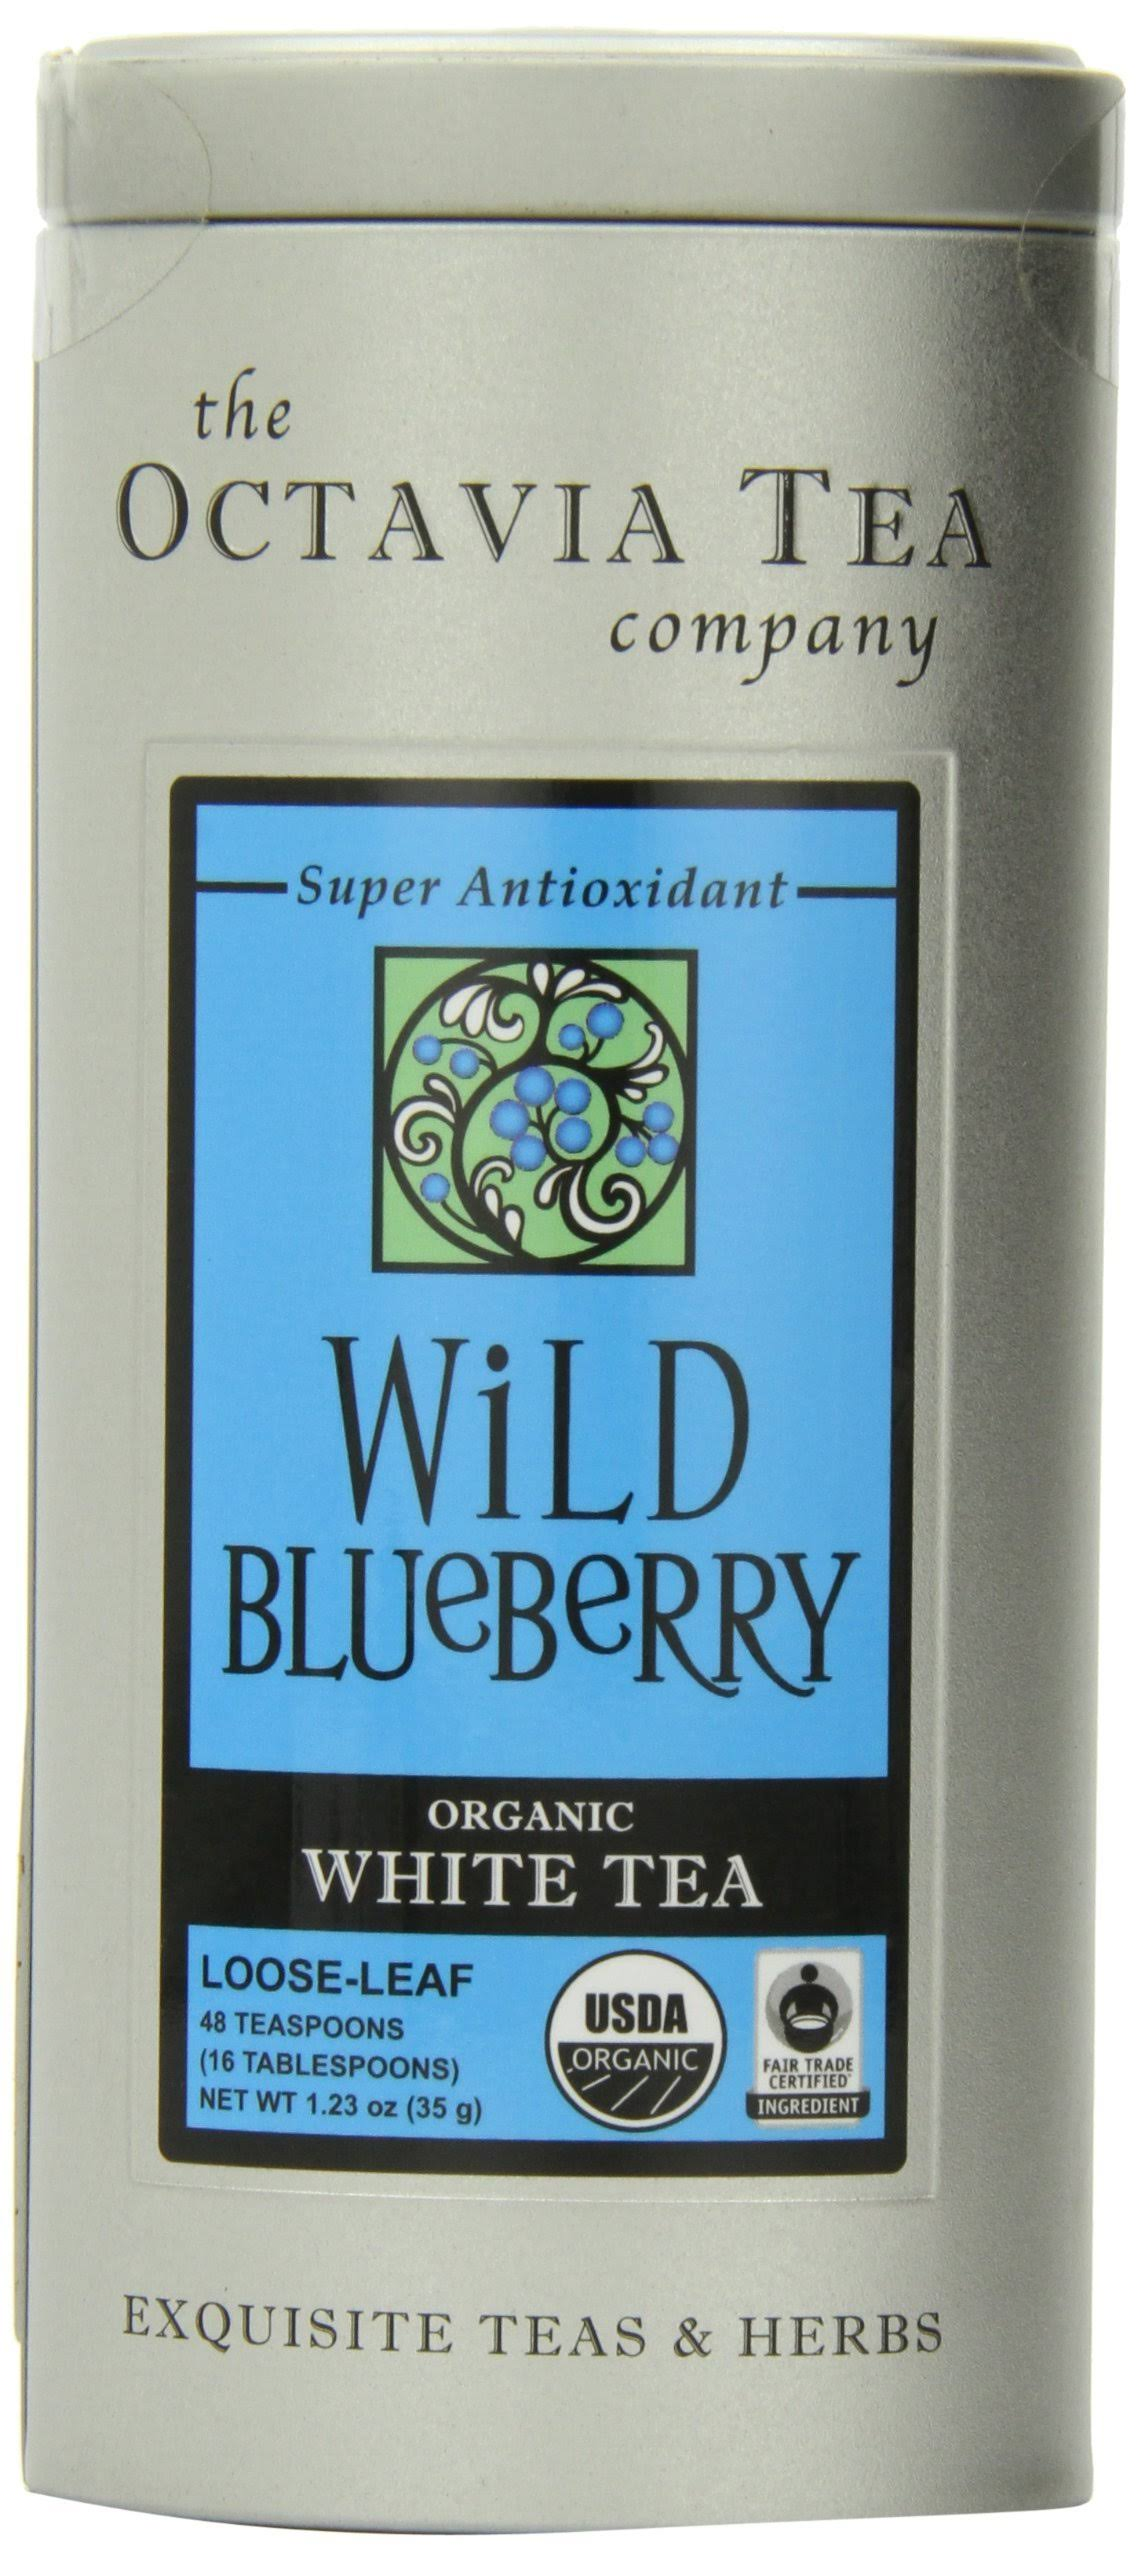 Octavia Wild Blueberry Organic White Tea